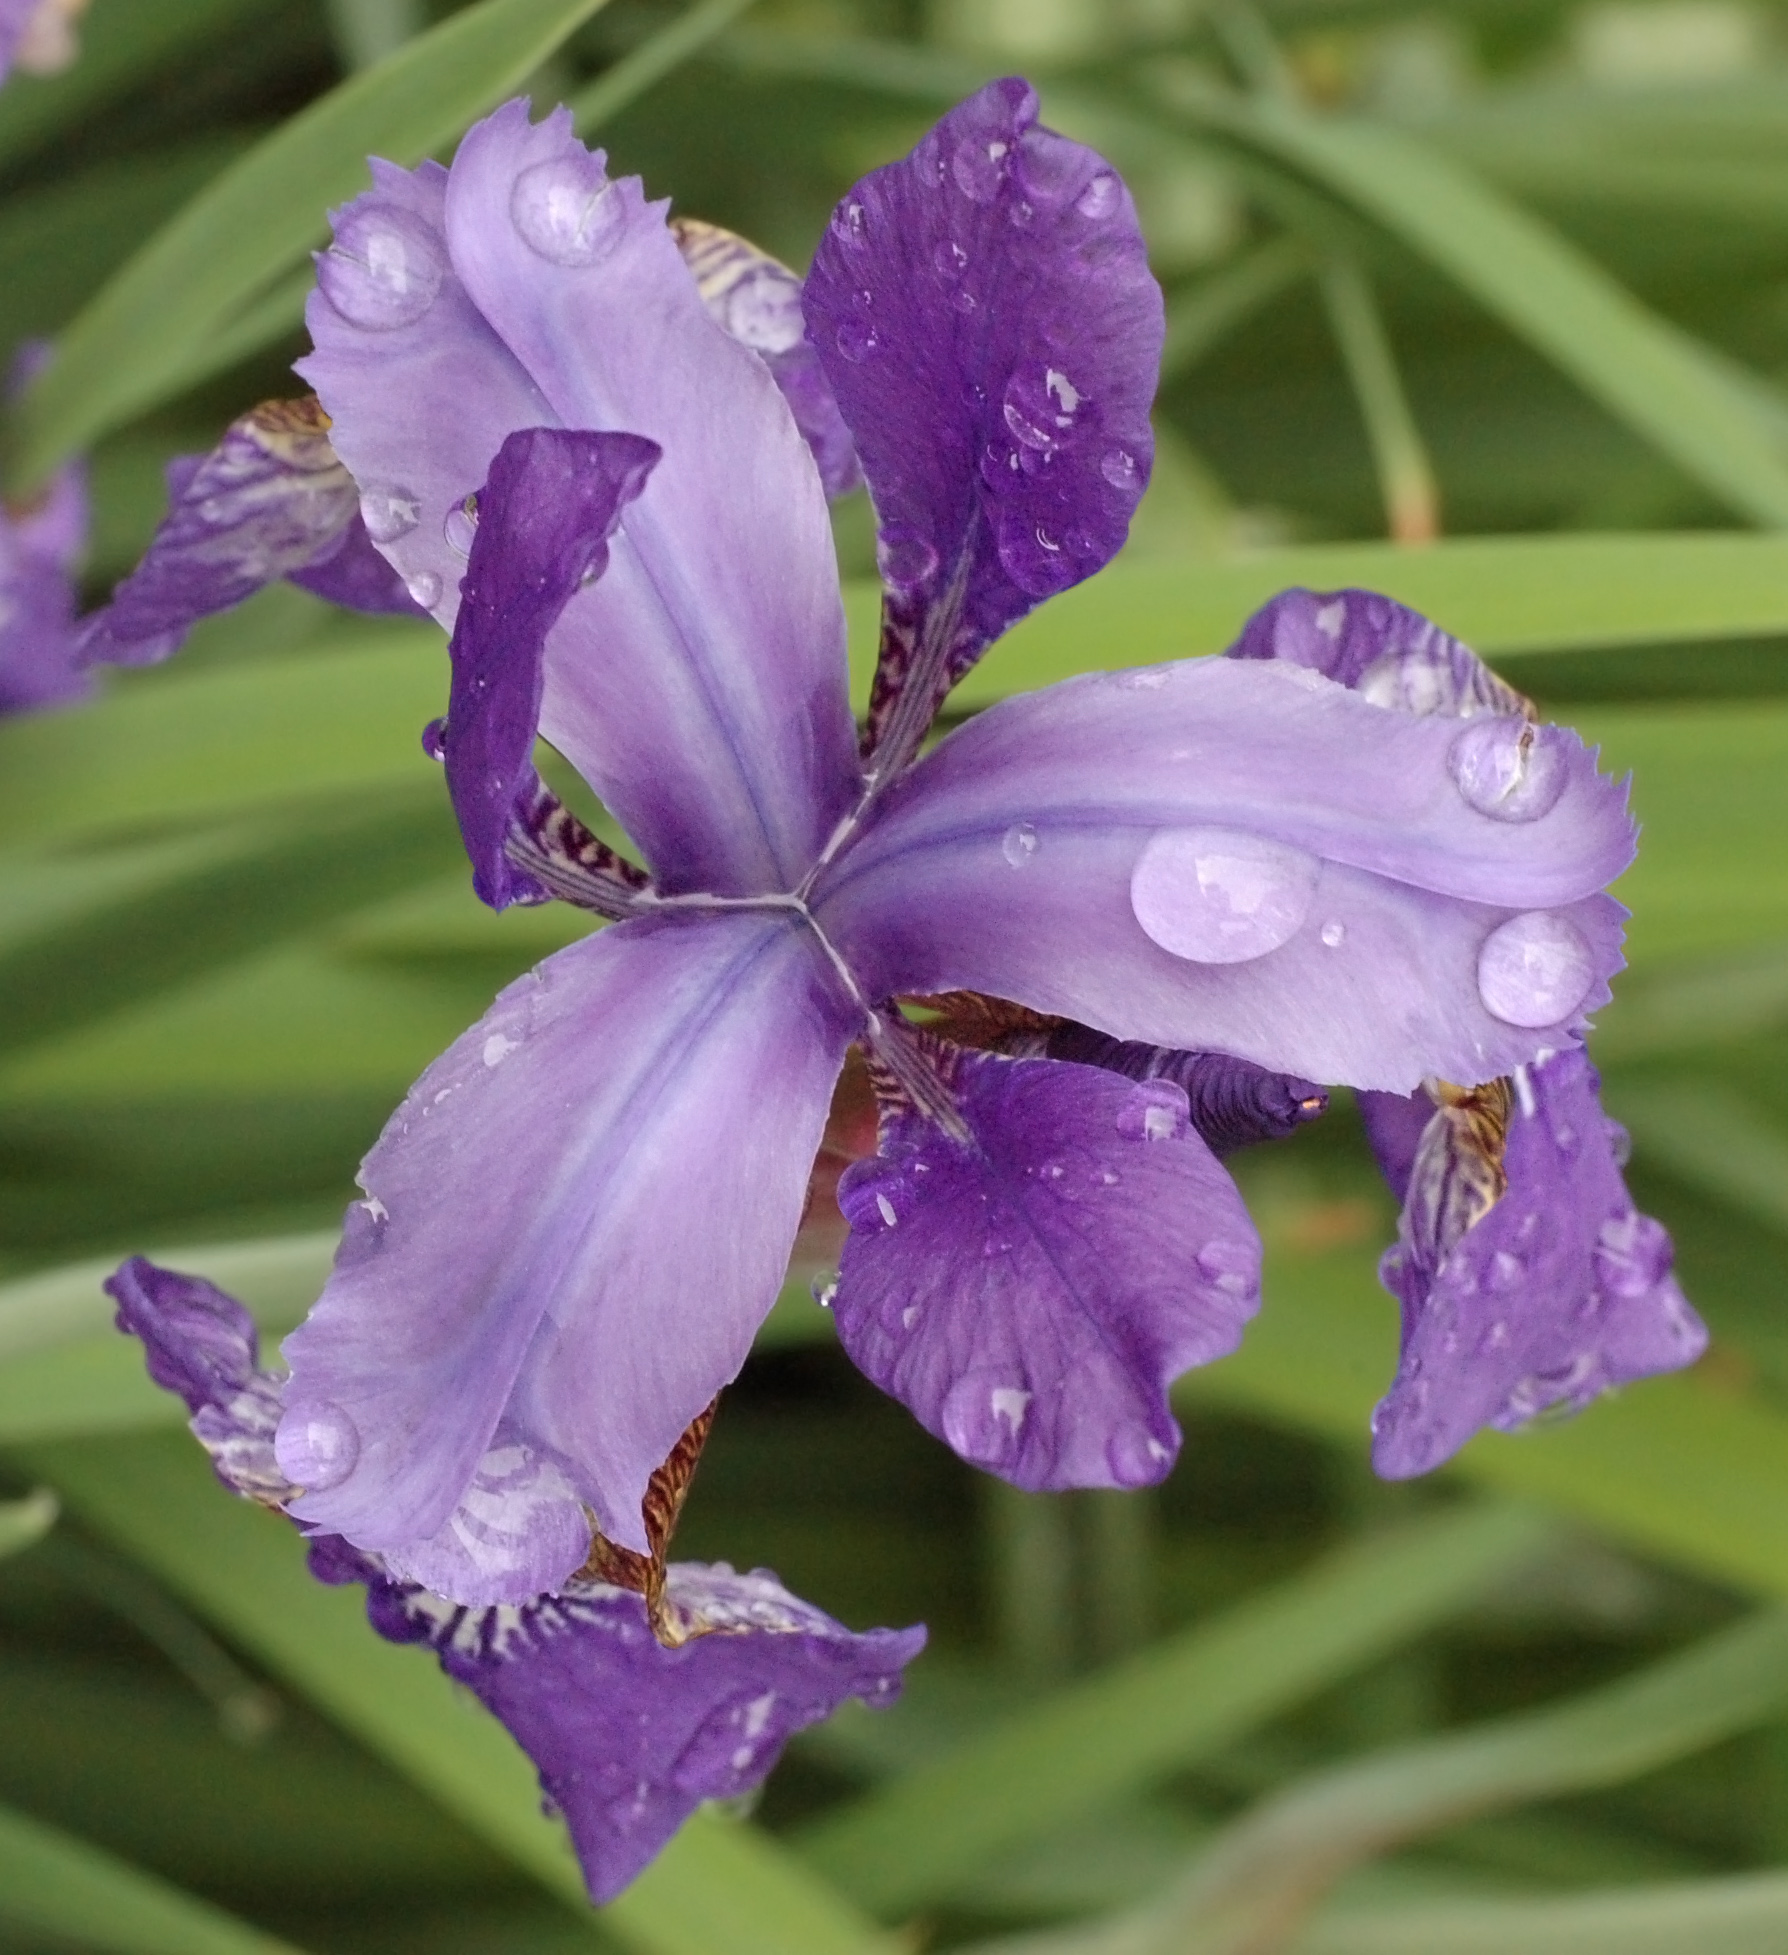 http://upload.wikimedia.org/wikipedia/commons/4/4b/Iris_Purple_Top_View_1788px.jpg